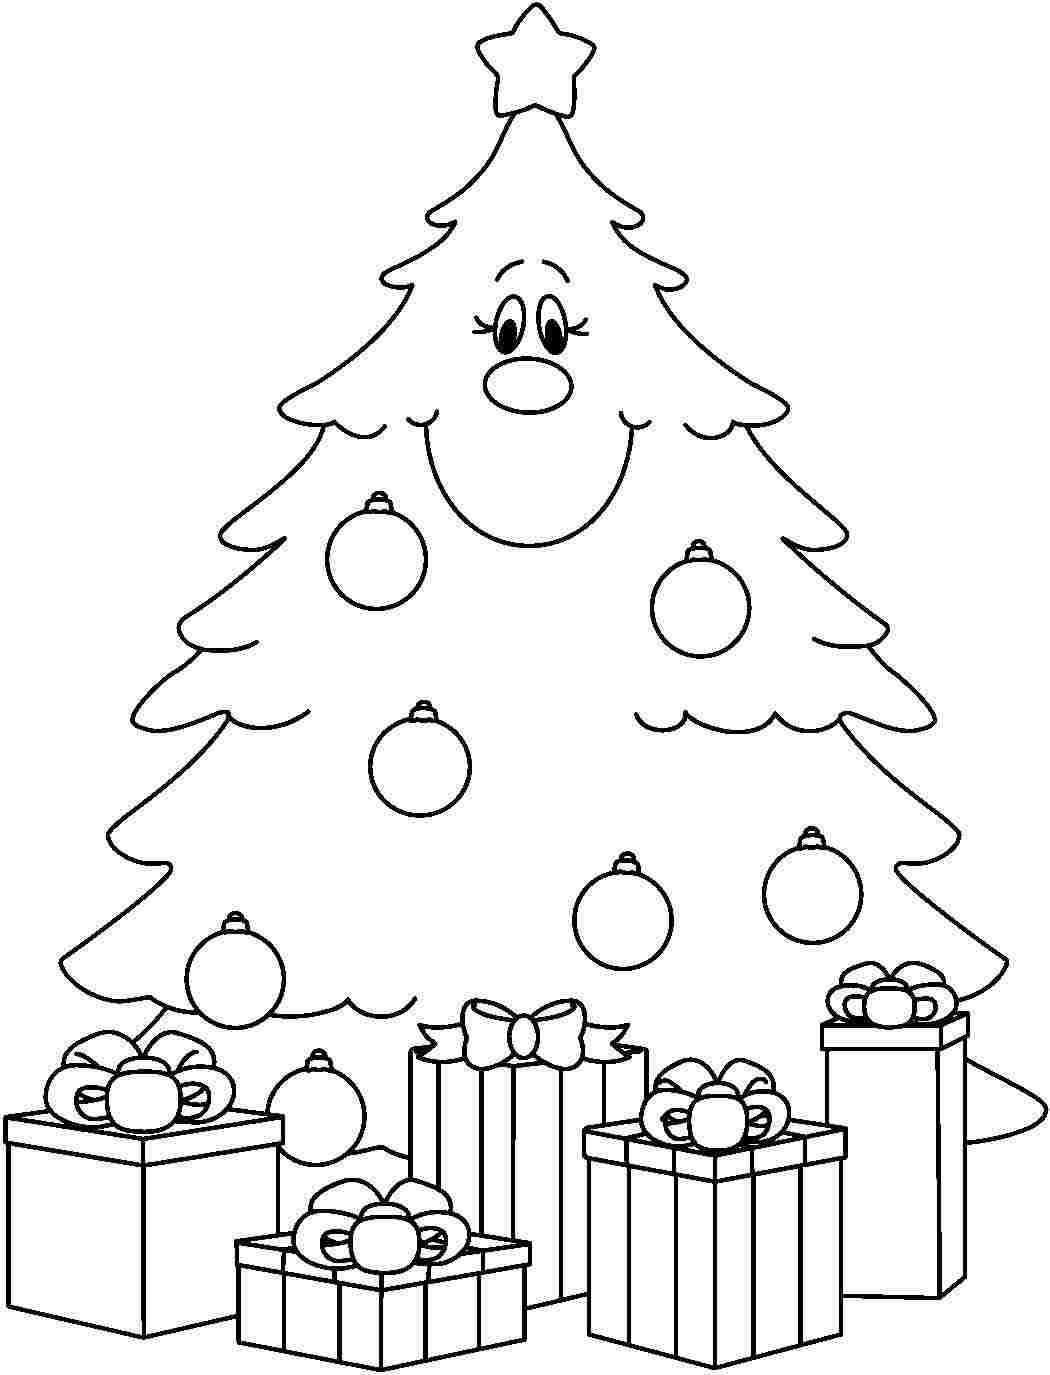 Carson dellosa free clipart christmas svg stock Free Kindergarten Christmas Cliparts, Download Free Clip Art, Free ... svg stock